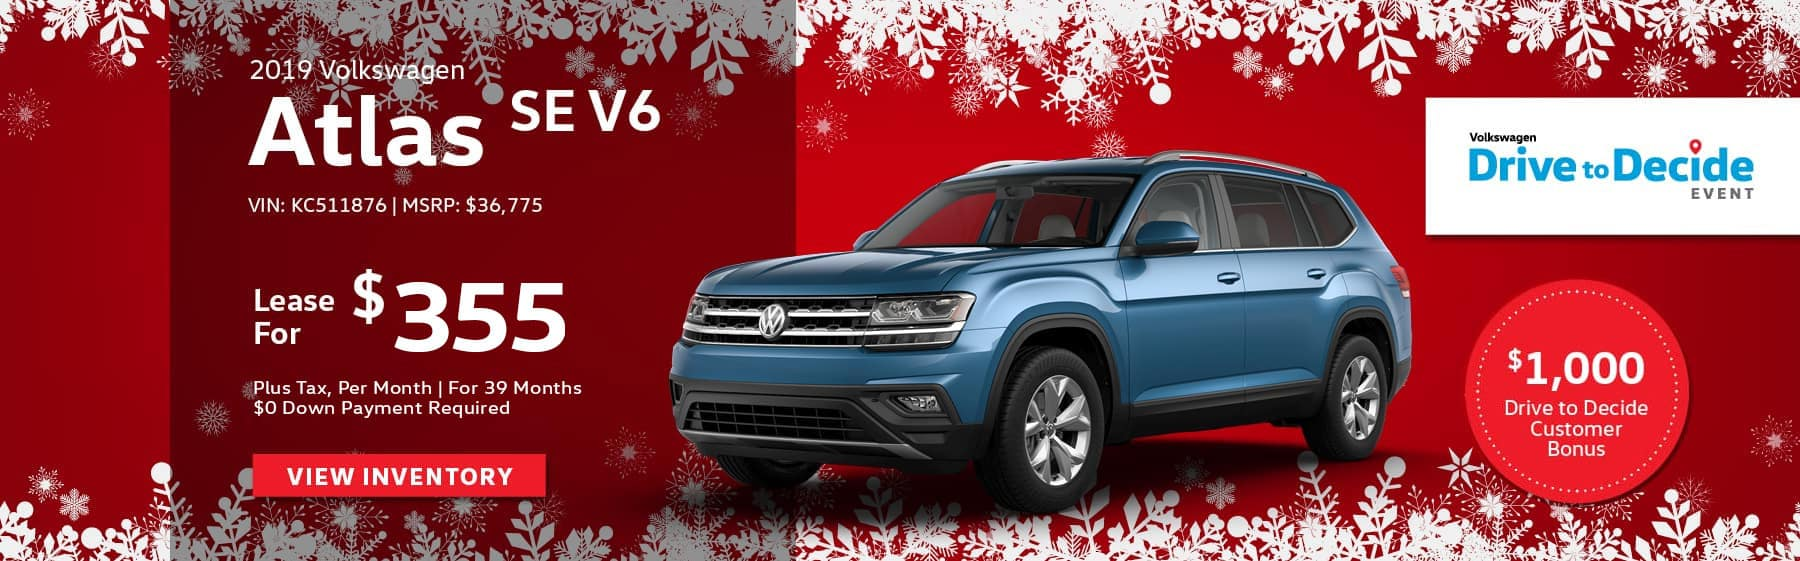 Lease the 2019 Volkswagen Atlas SE V6 for only $355 per month, plus tax for 39 months. $0 down payment required.